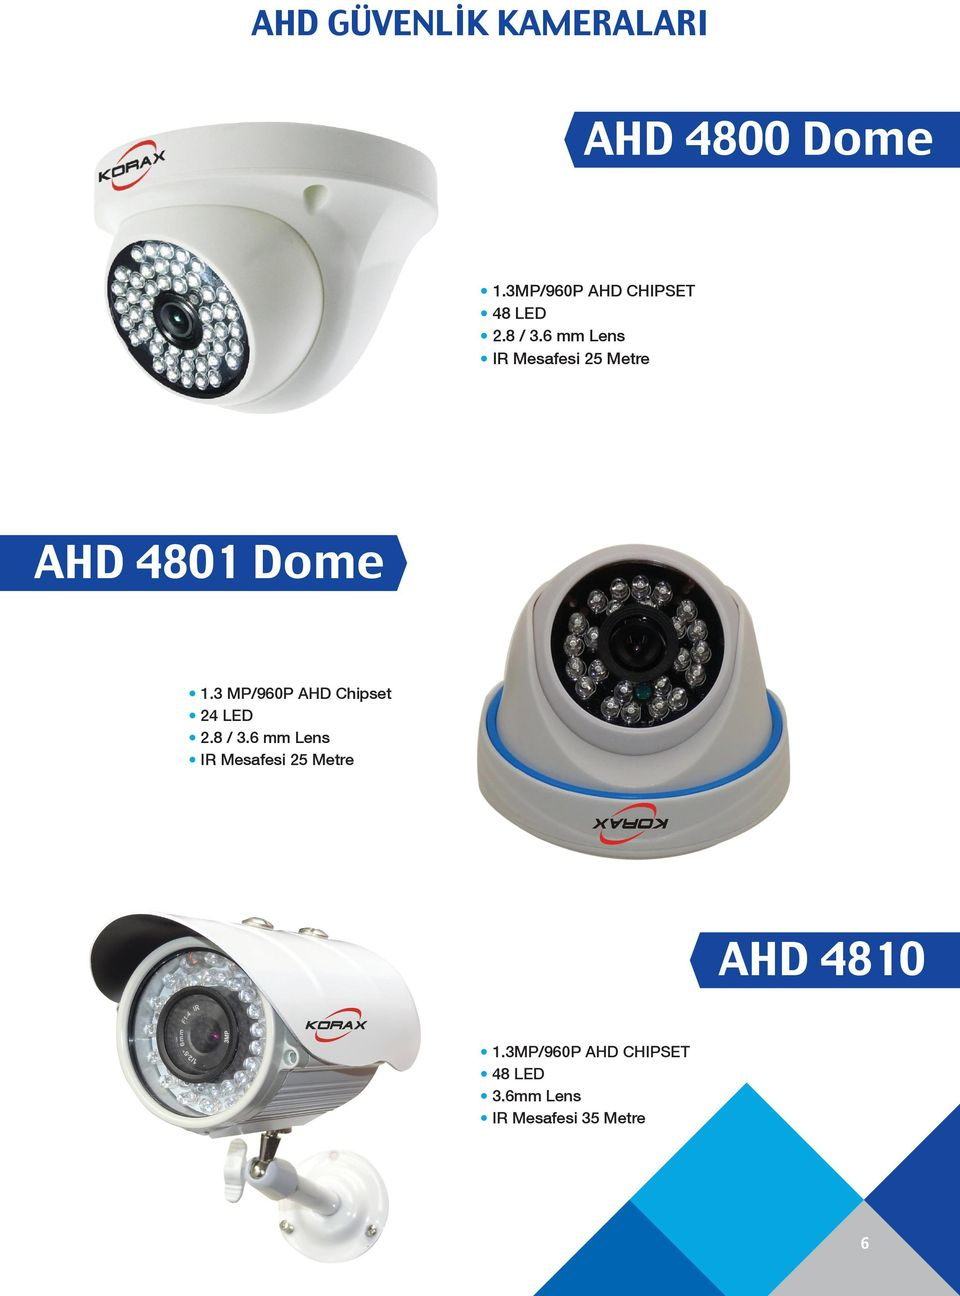 3 MP/960P AHD Chipset 24 LED 2.8 / 3.